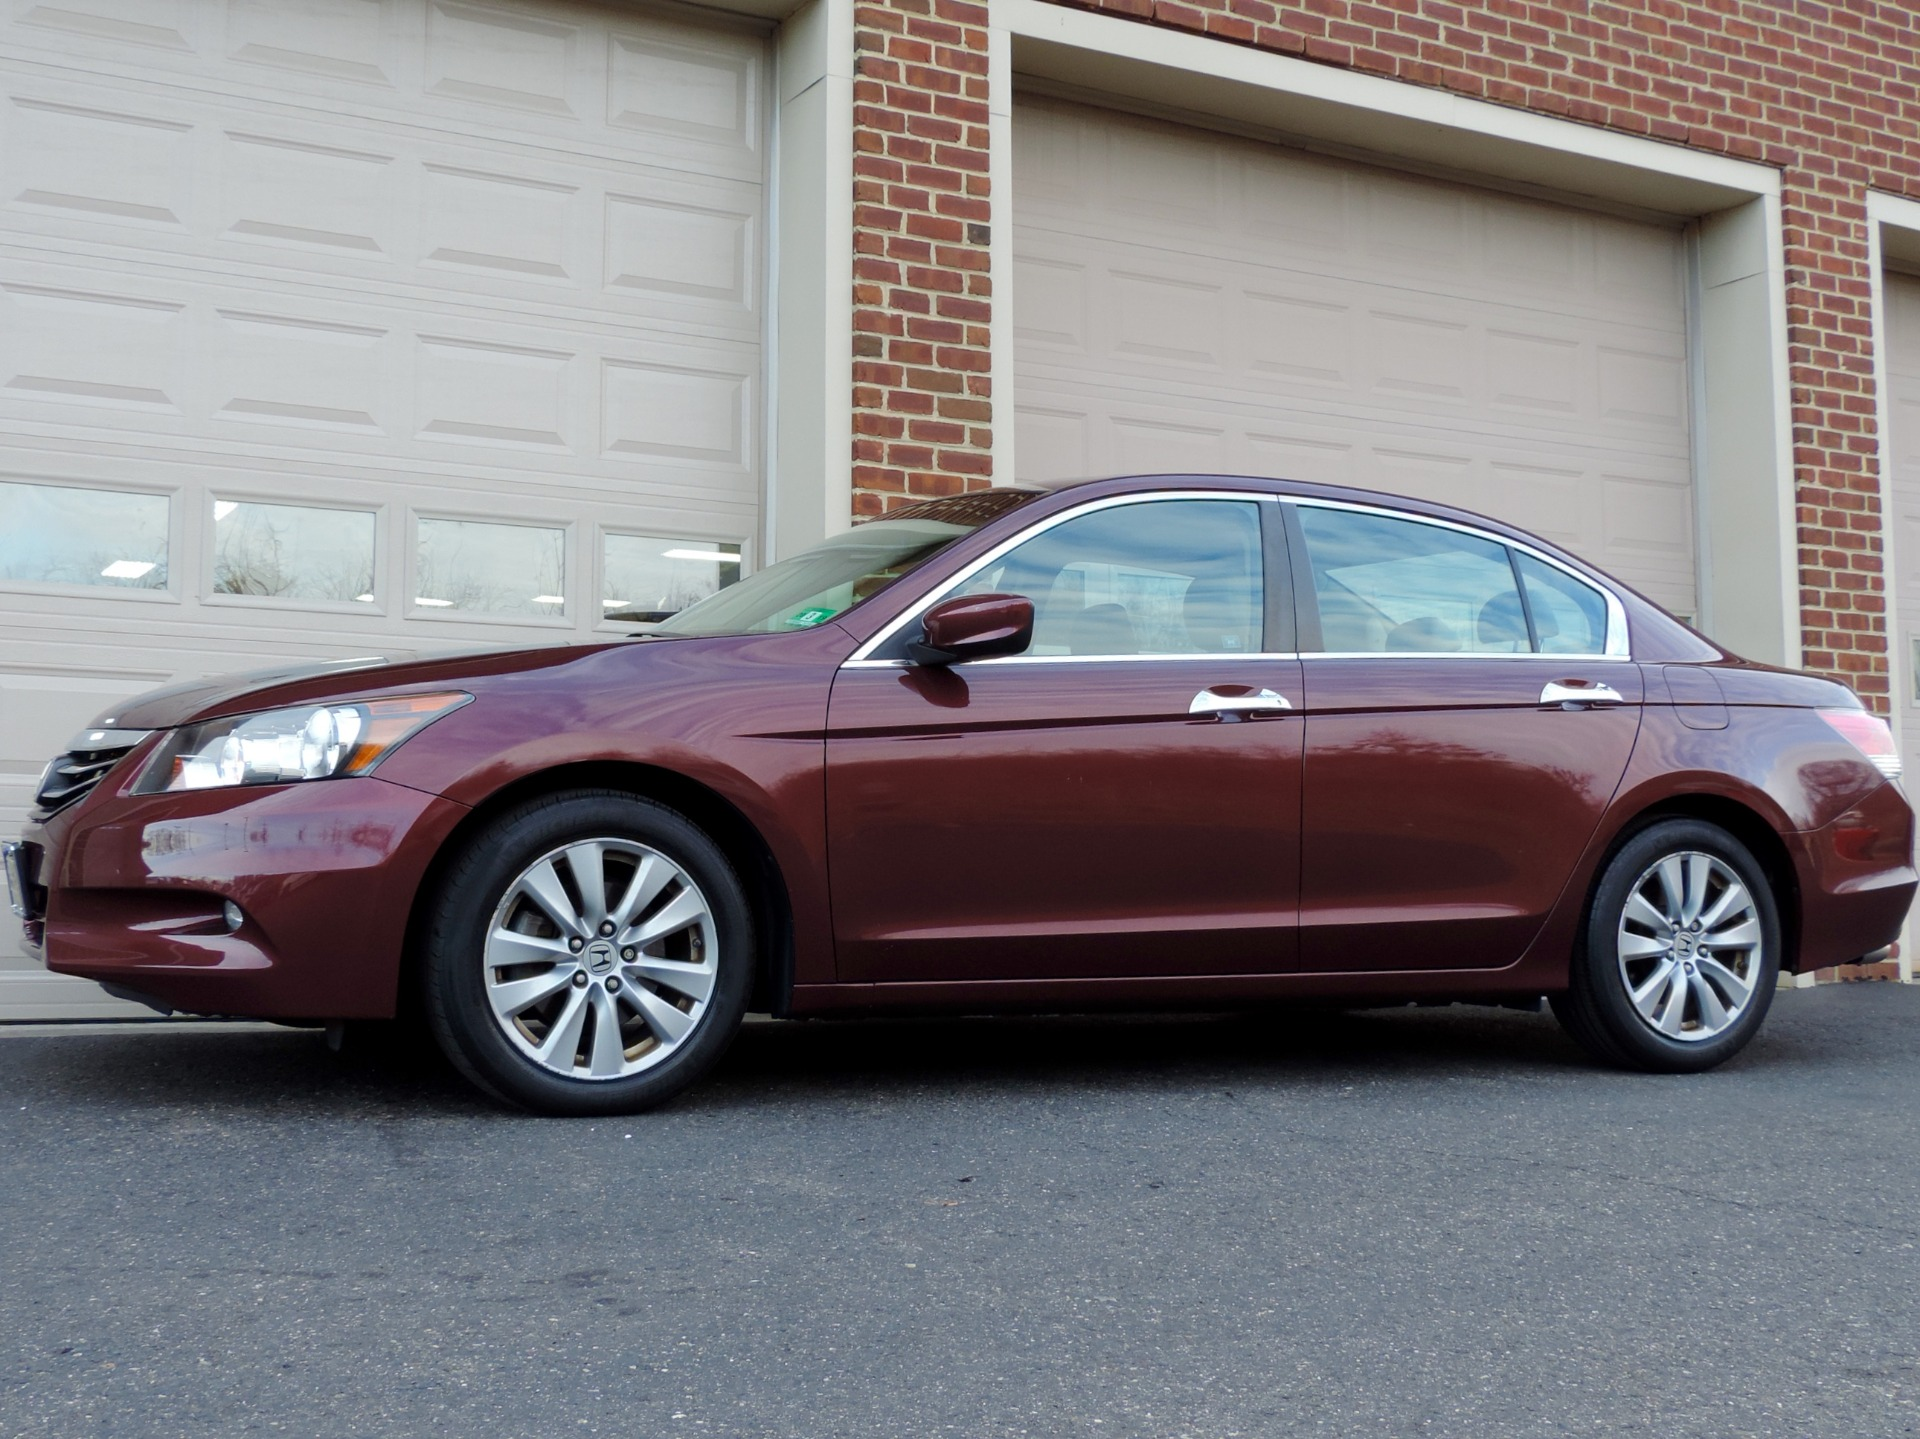 2012 honda accord ex l v6 stock 021444 for sale near edgewater park nj nj honda dealer. Black Bedroom Furniture Sets. Home Design Ideas